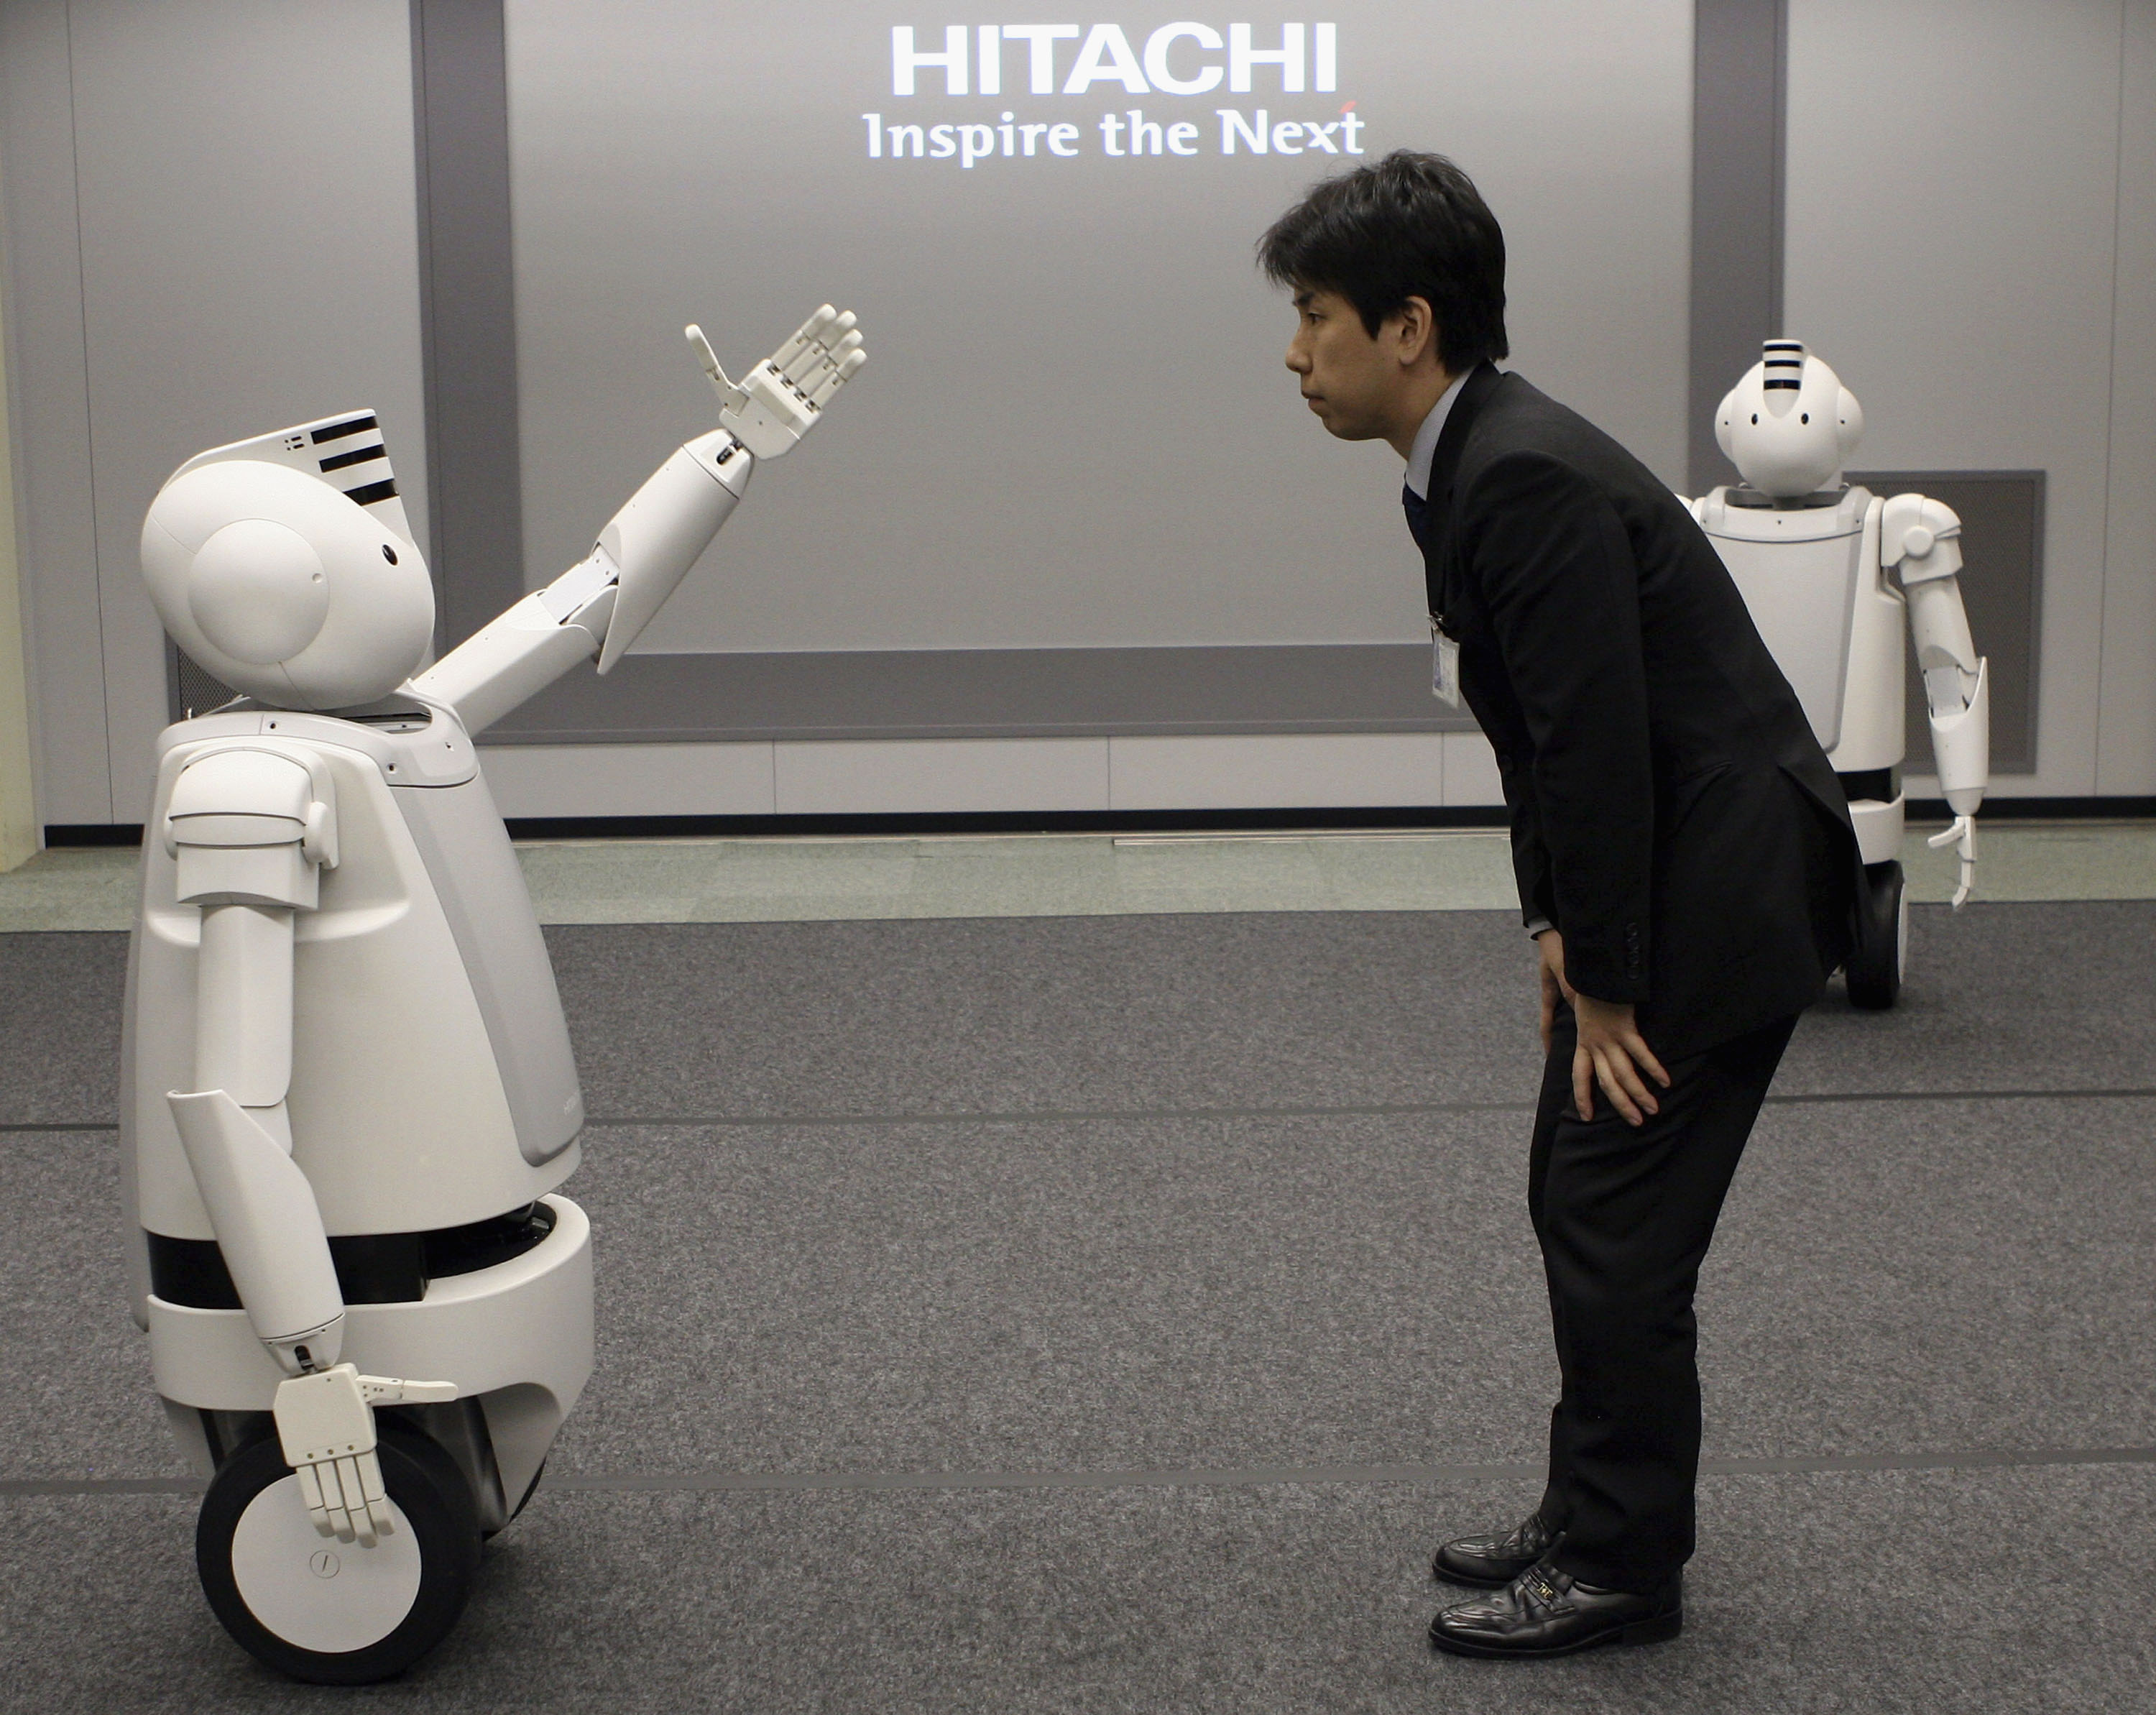 Japanese Electronics Conglomerate Hitachis New Humaniod Robot 'Emiew'